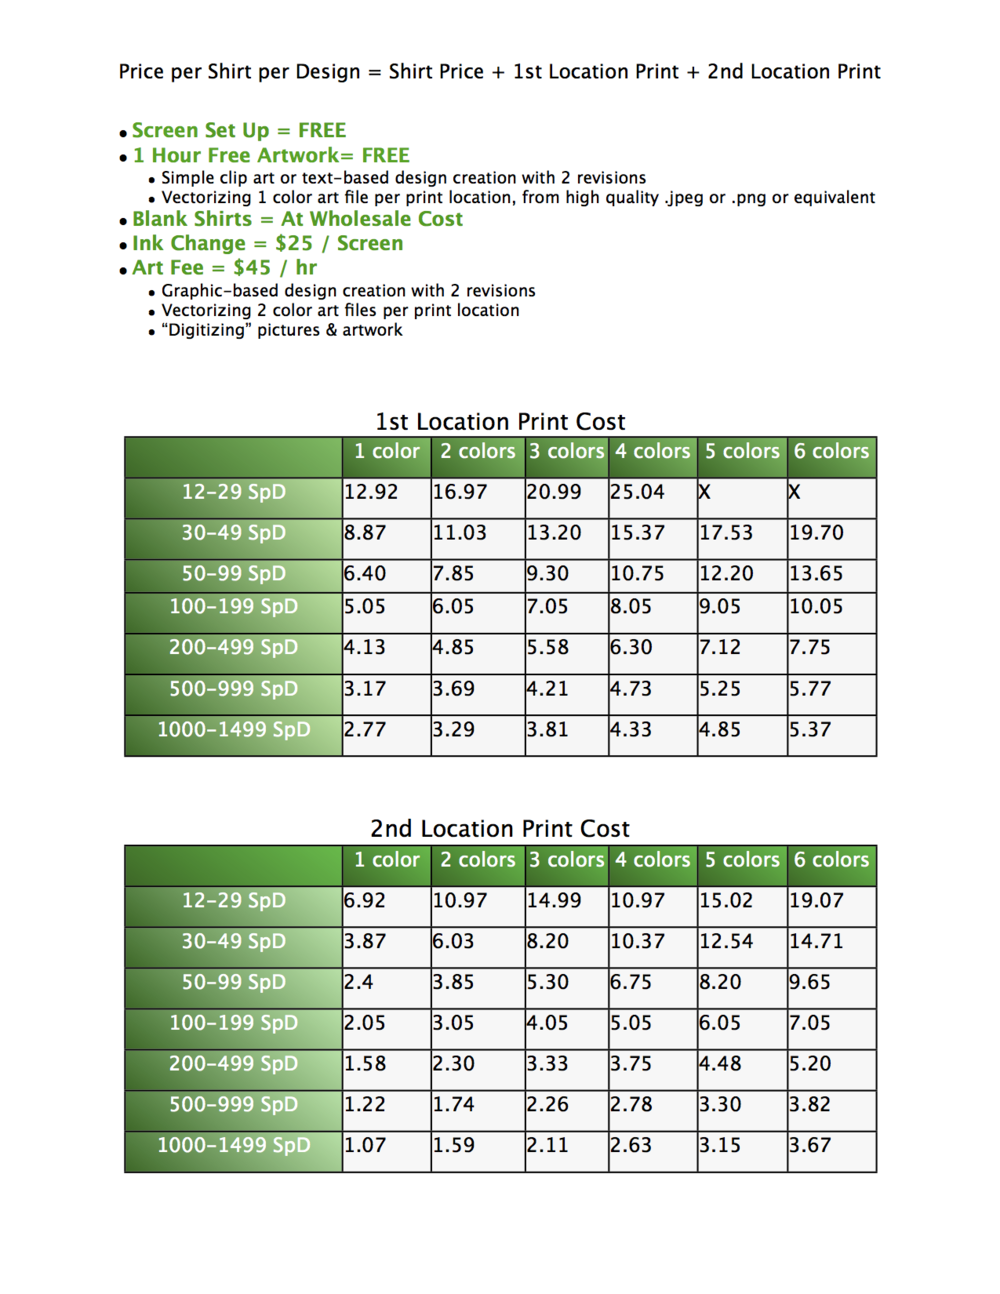 Price Sheet 1:1:2016.png